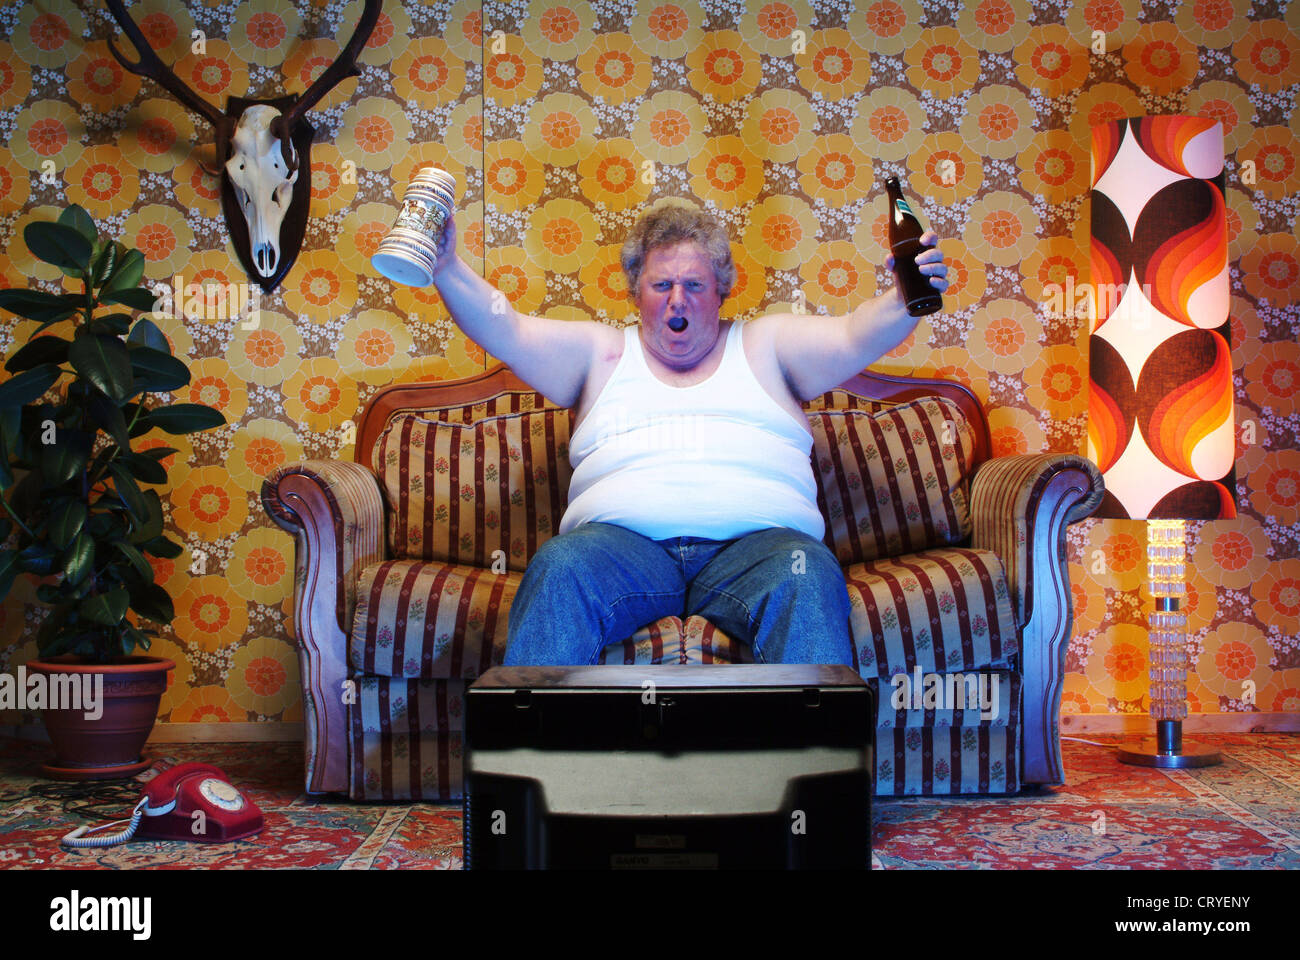 Alter Mann Im Sessel Fat Man Sitting On Couch And Watching Television Stock